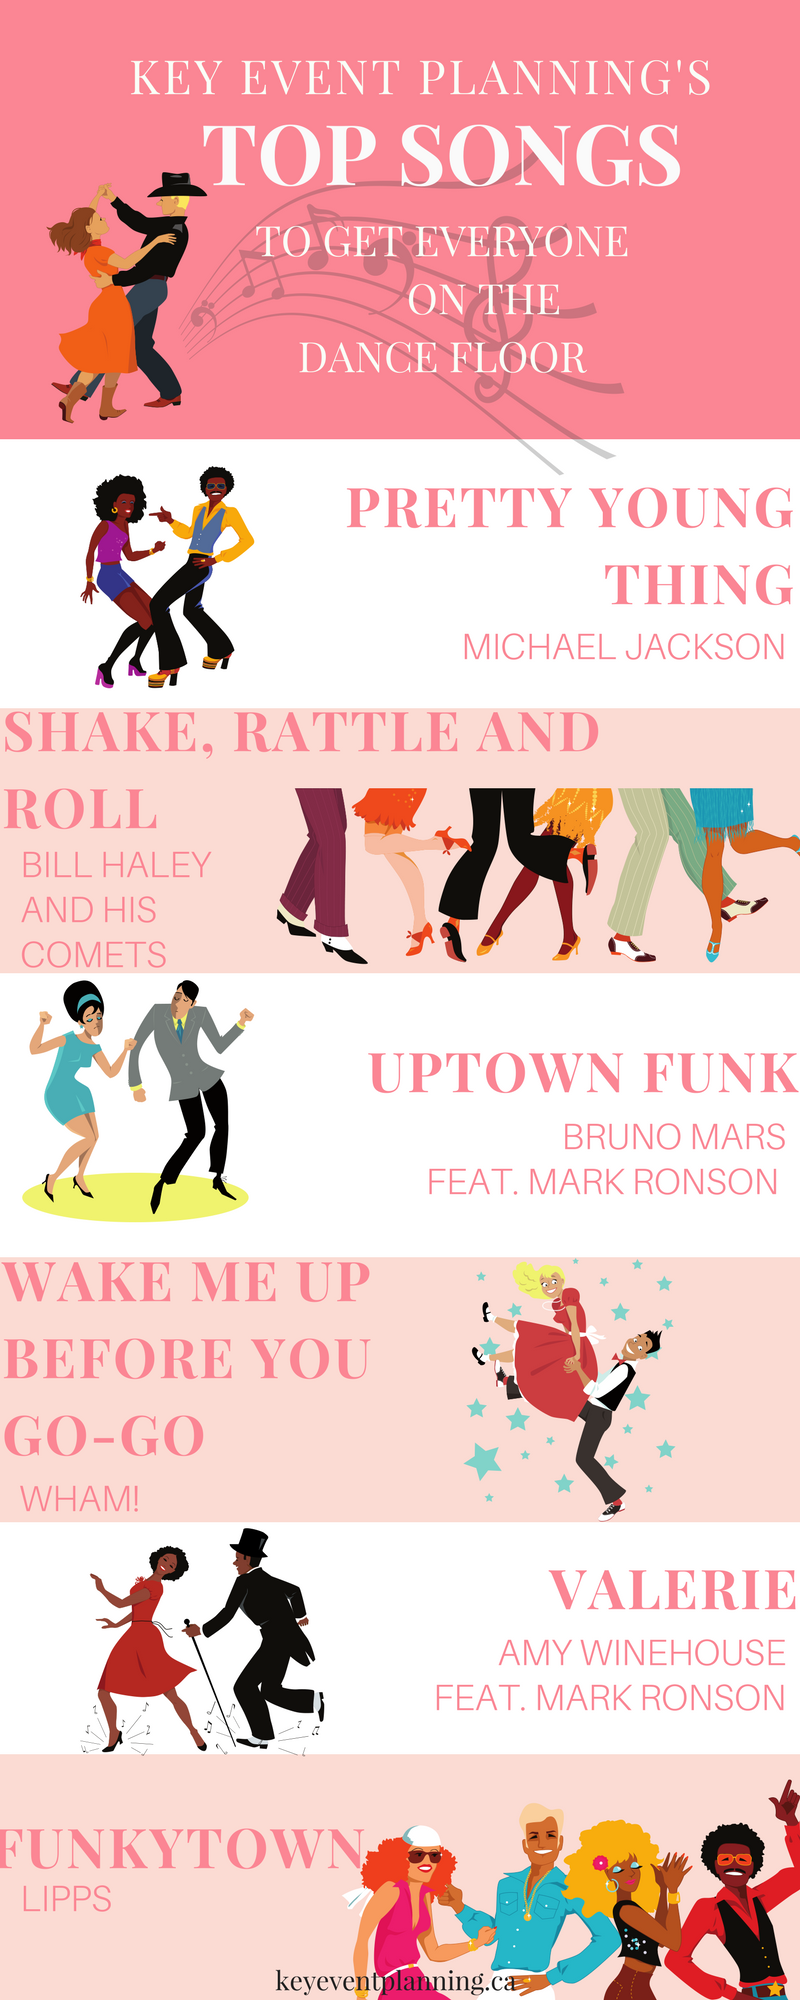 Wedding Planners Best Songs for a Packed Dance Floor